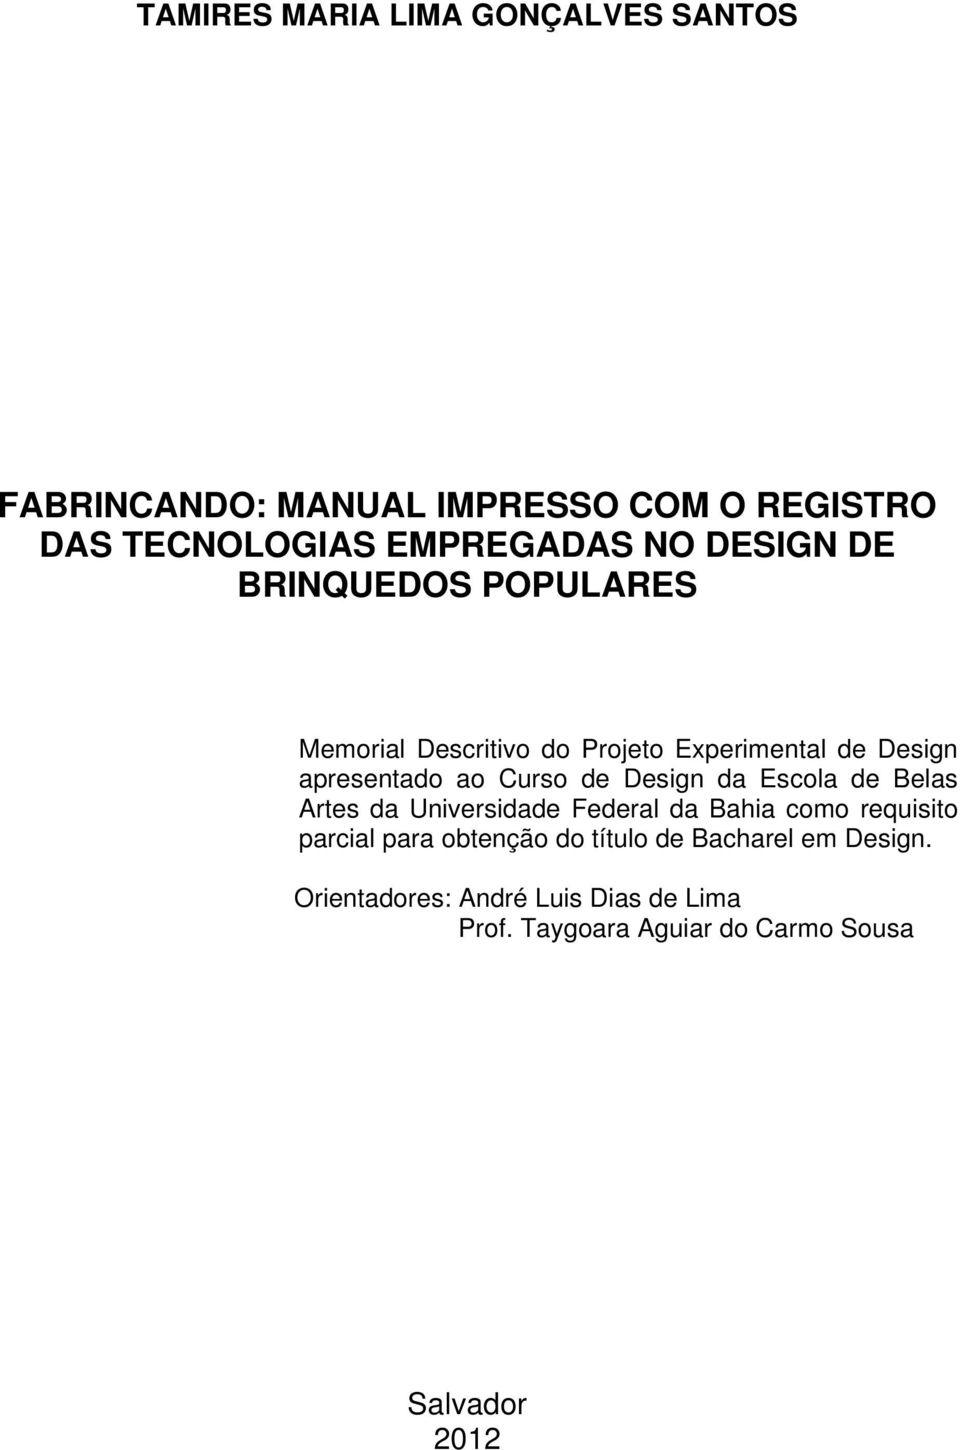 Design da Escola de Belas Artes da Universidade Federal da Bahia como requisito parcial para obtenção do